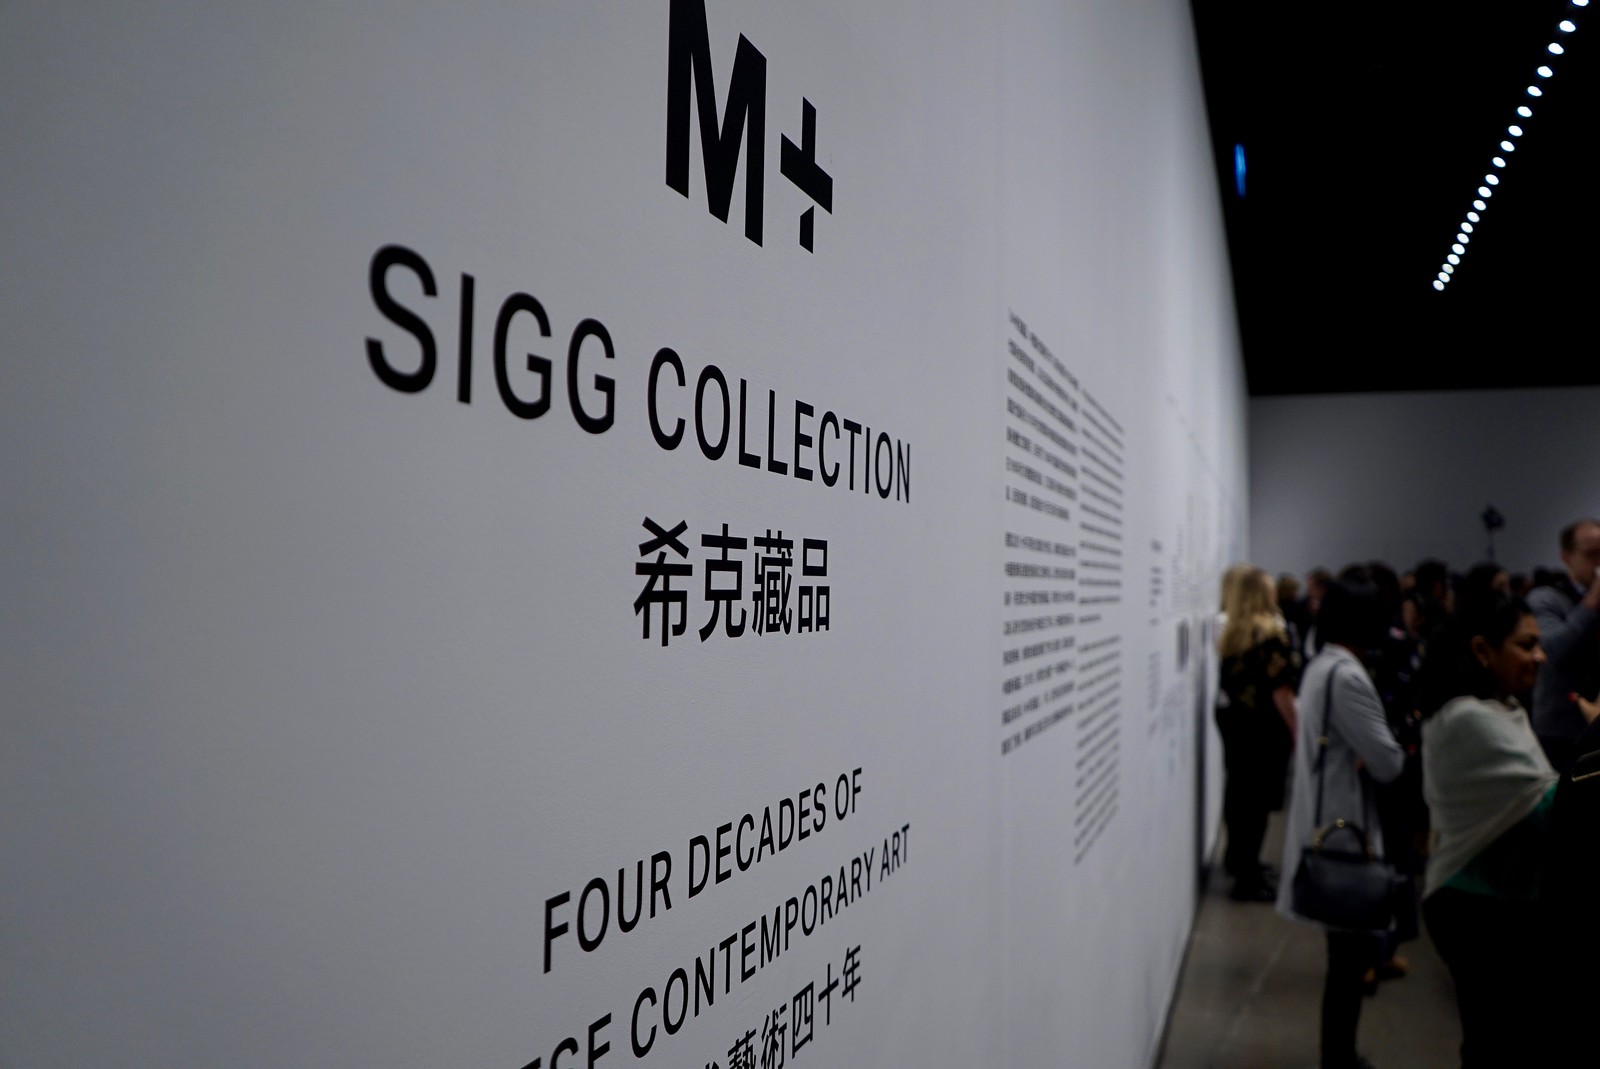 M+ Sigg Collection at Artis Tree, Hong Kong